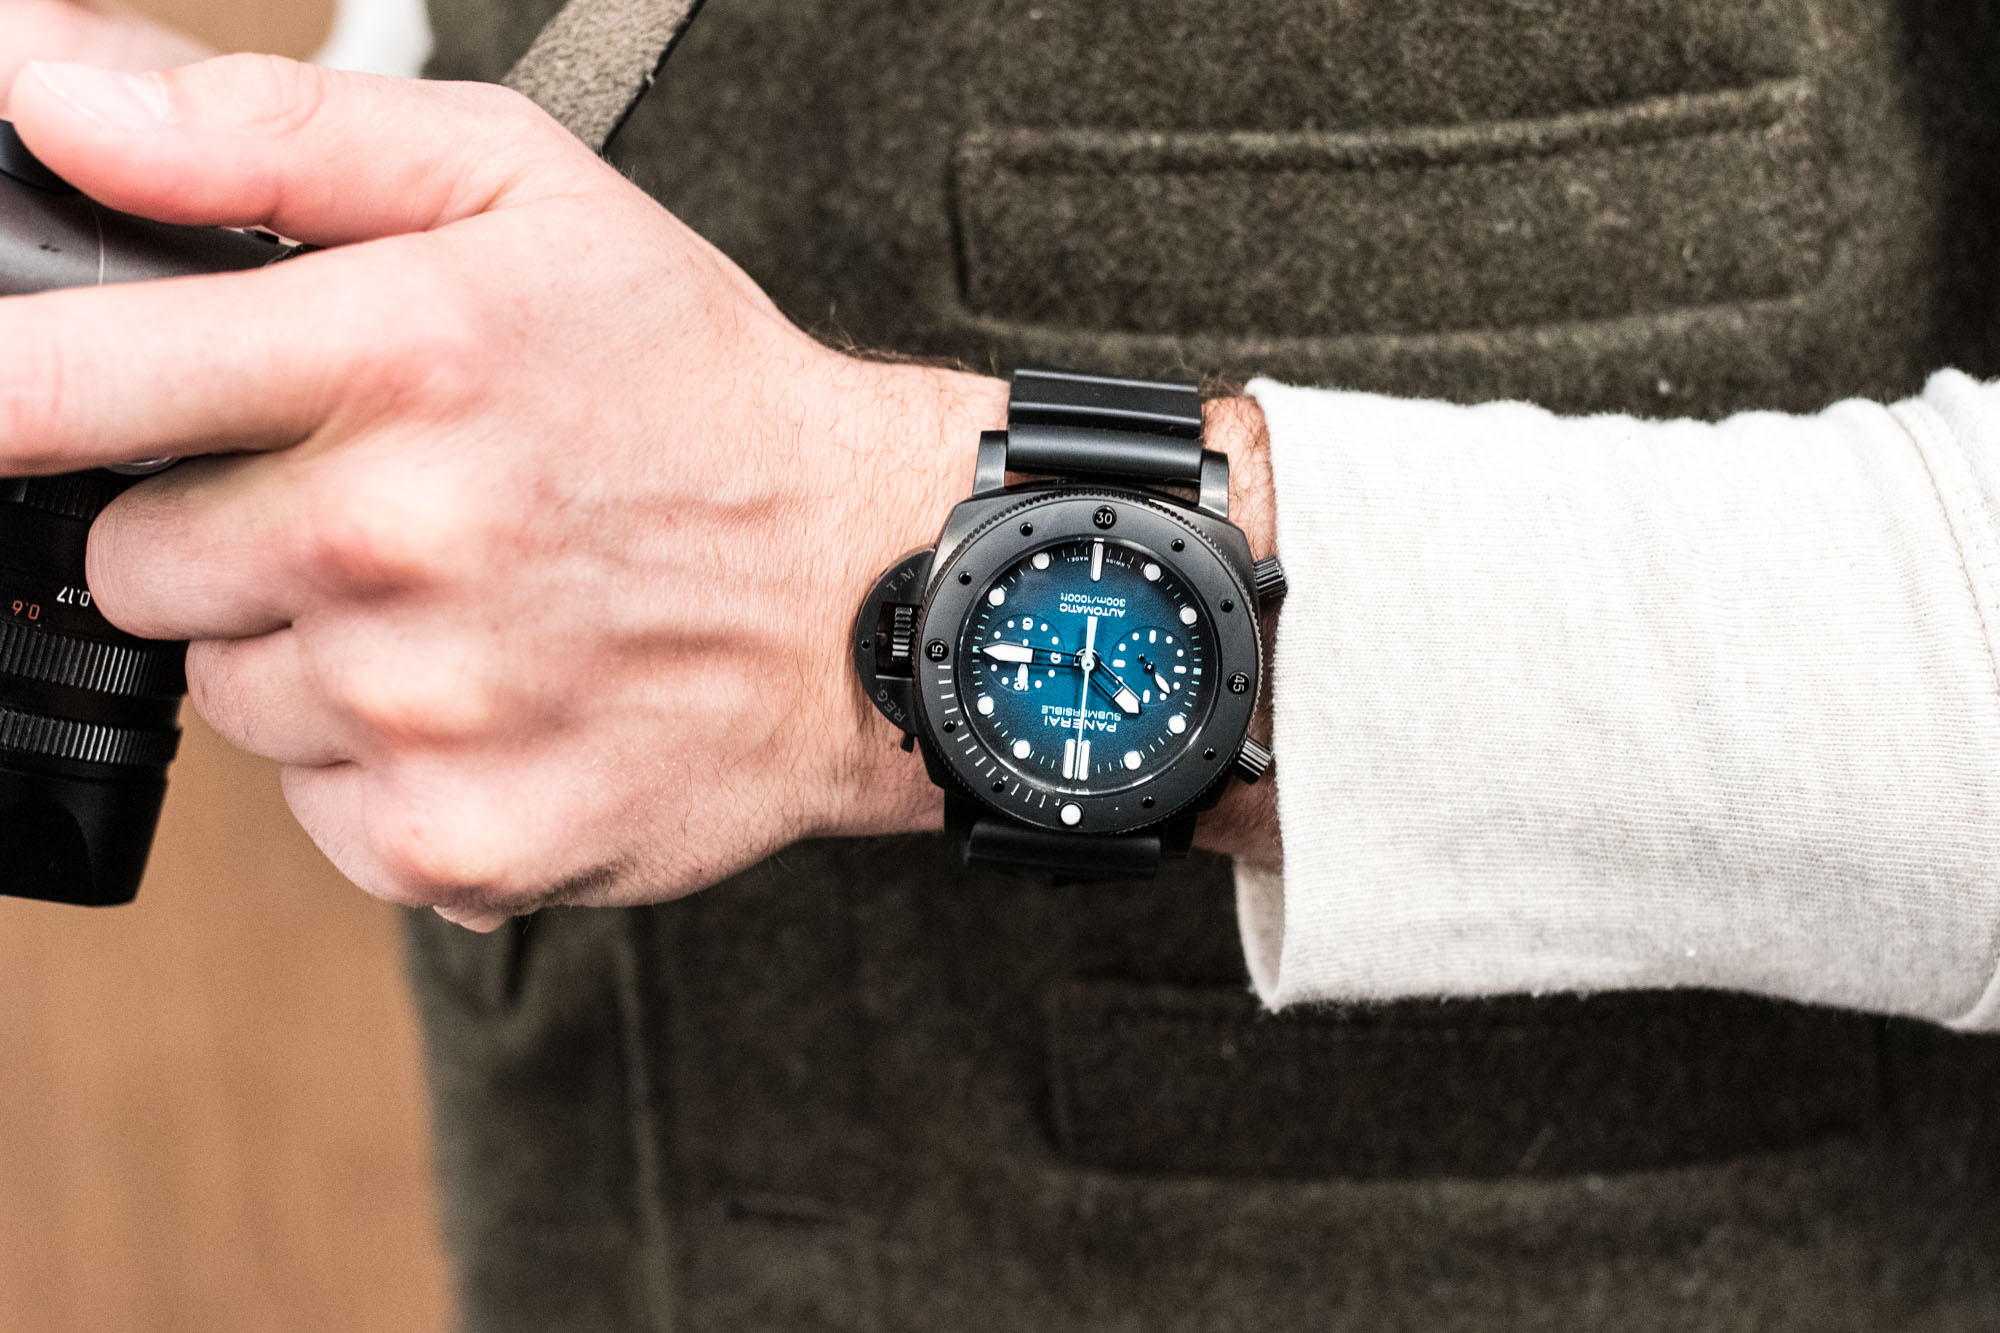 Panerai Submersible Chronographe Guillaume Nery Ed Speciale